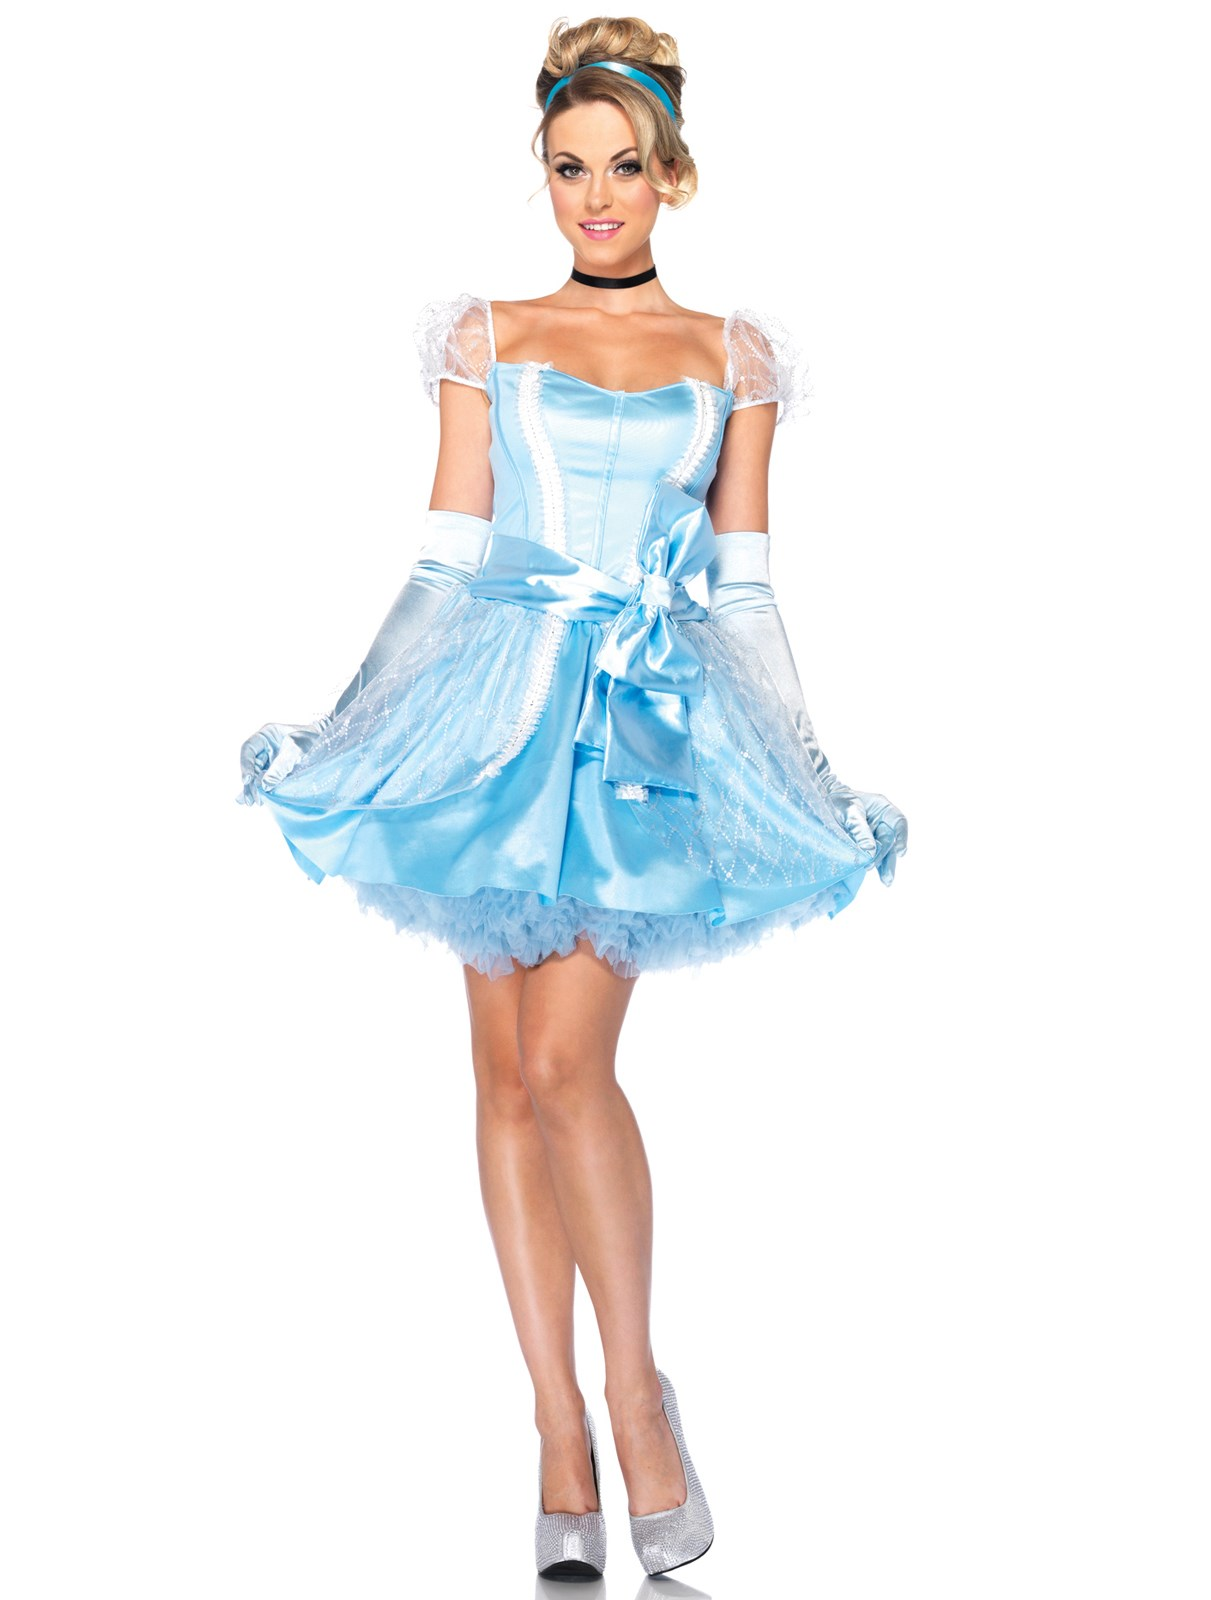 Disney Princesses Glass Slipper Cinderella Adult Costume Small (4-6)